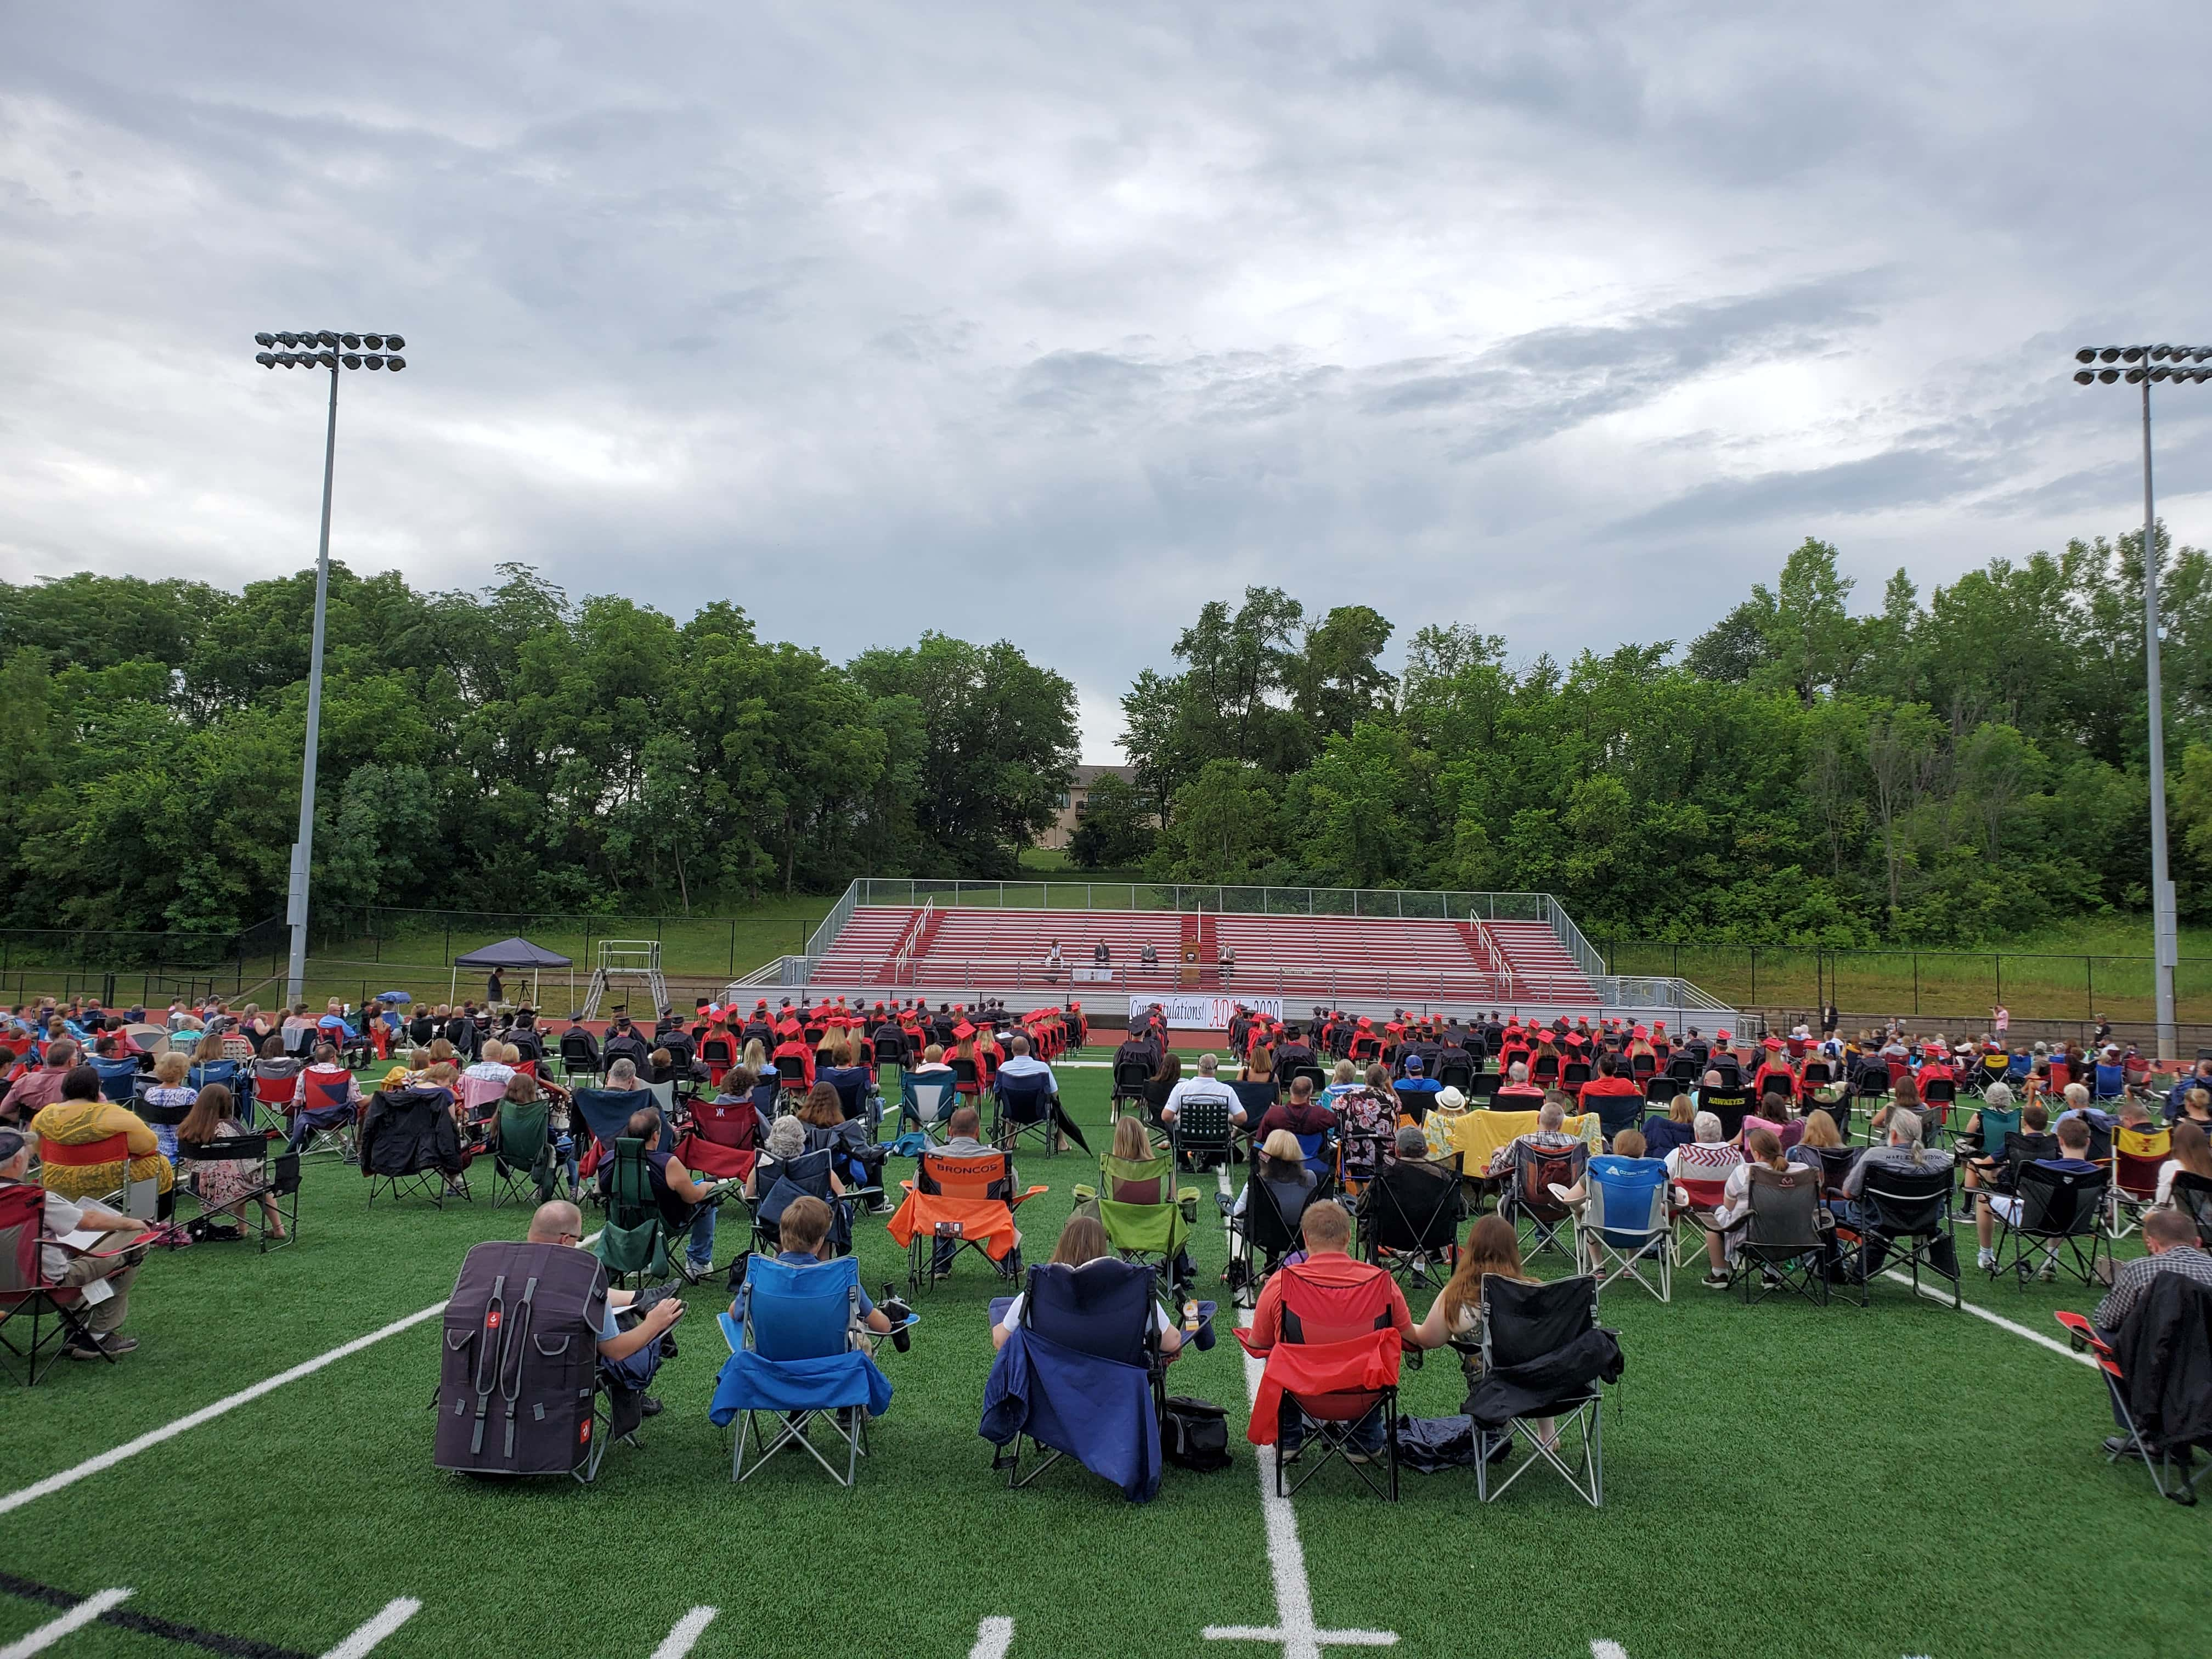 Adm Celebrates Class Of 2020 With Outdoor Graduation Ceremony Raccoon Valley Radio The One To Count On